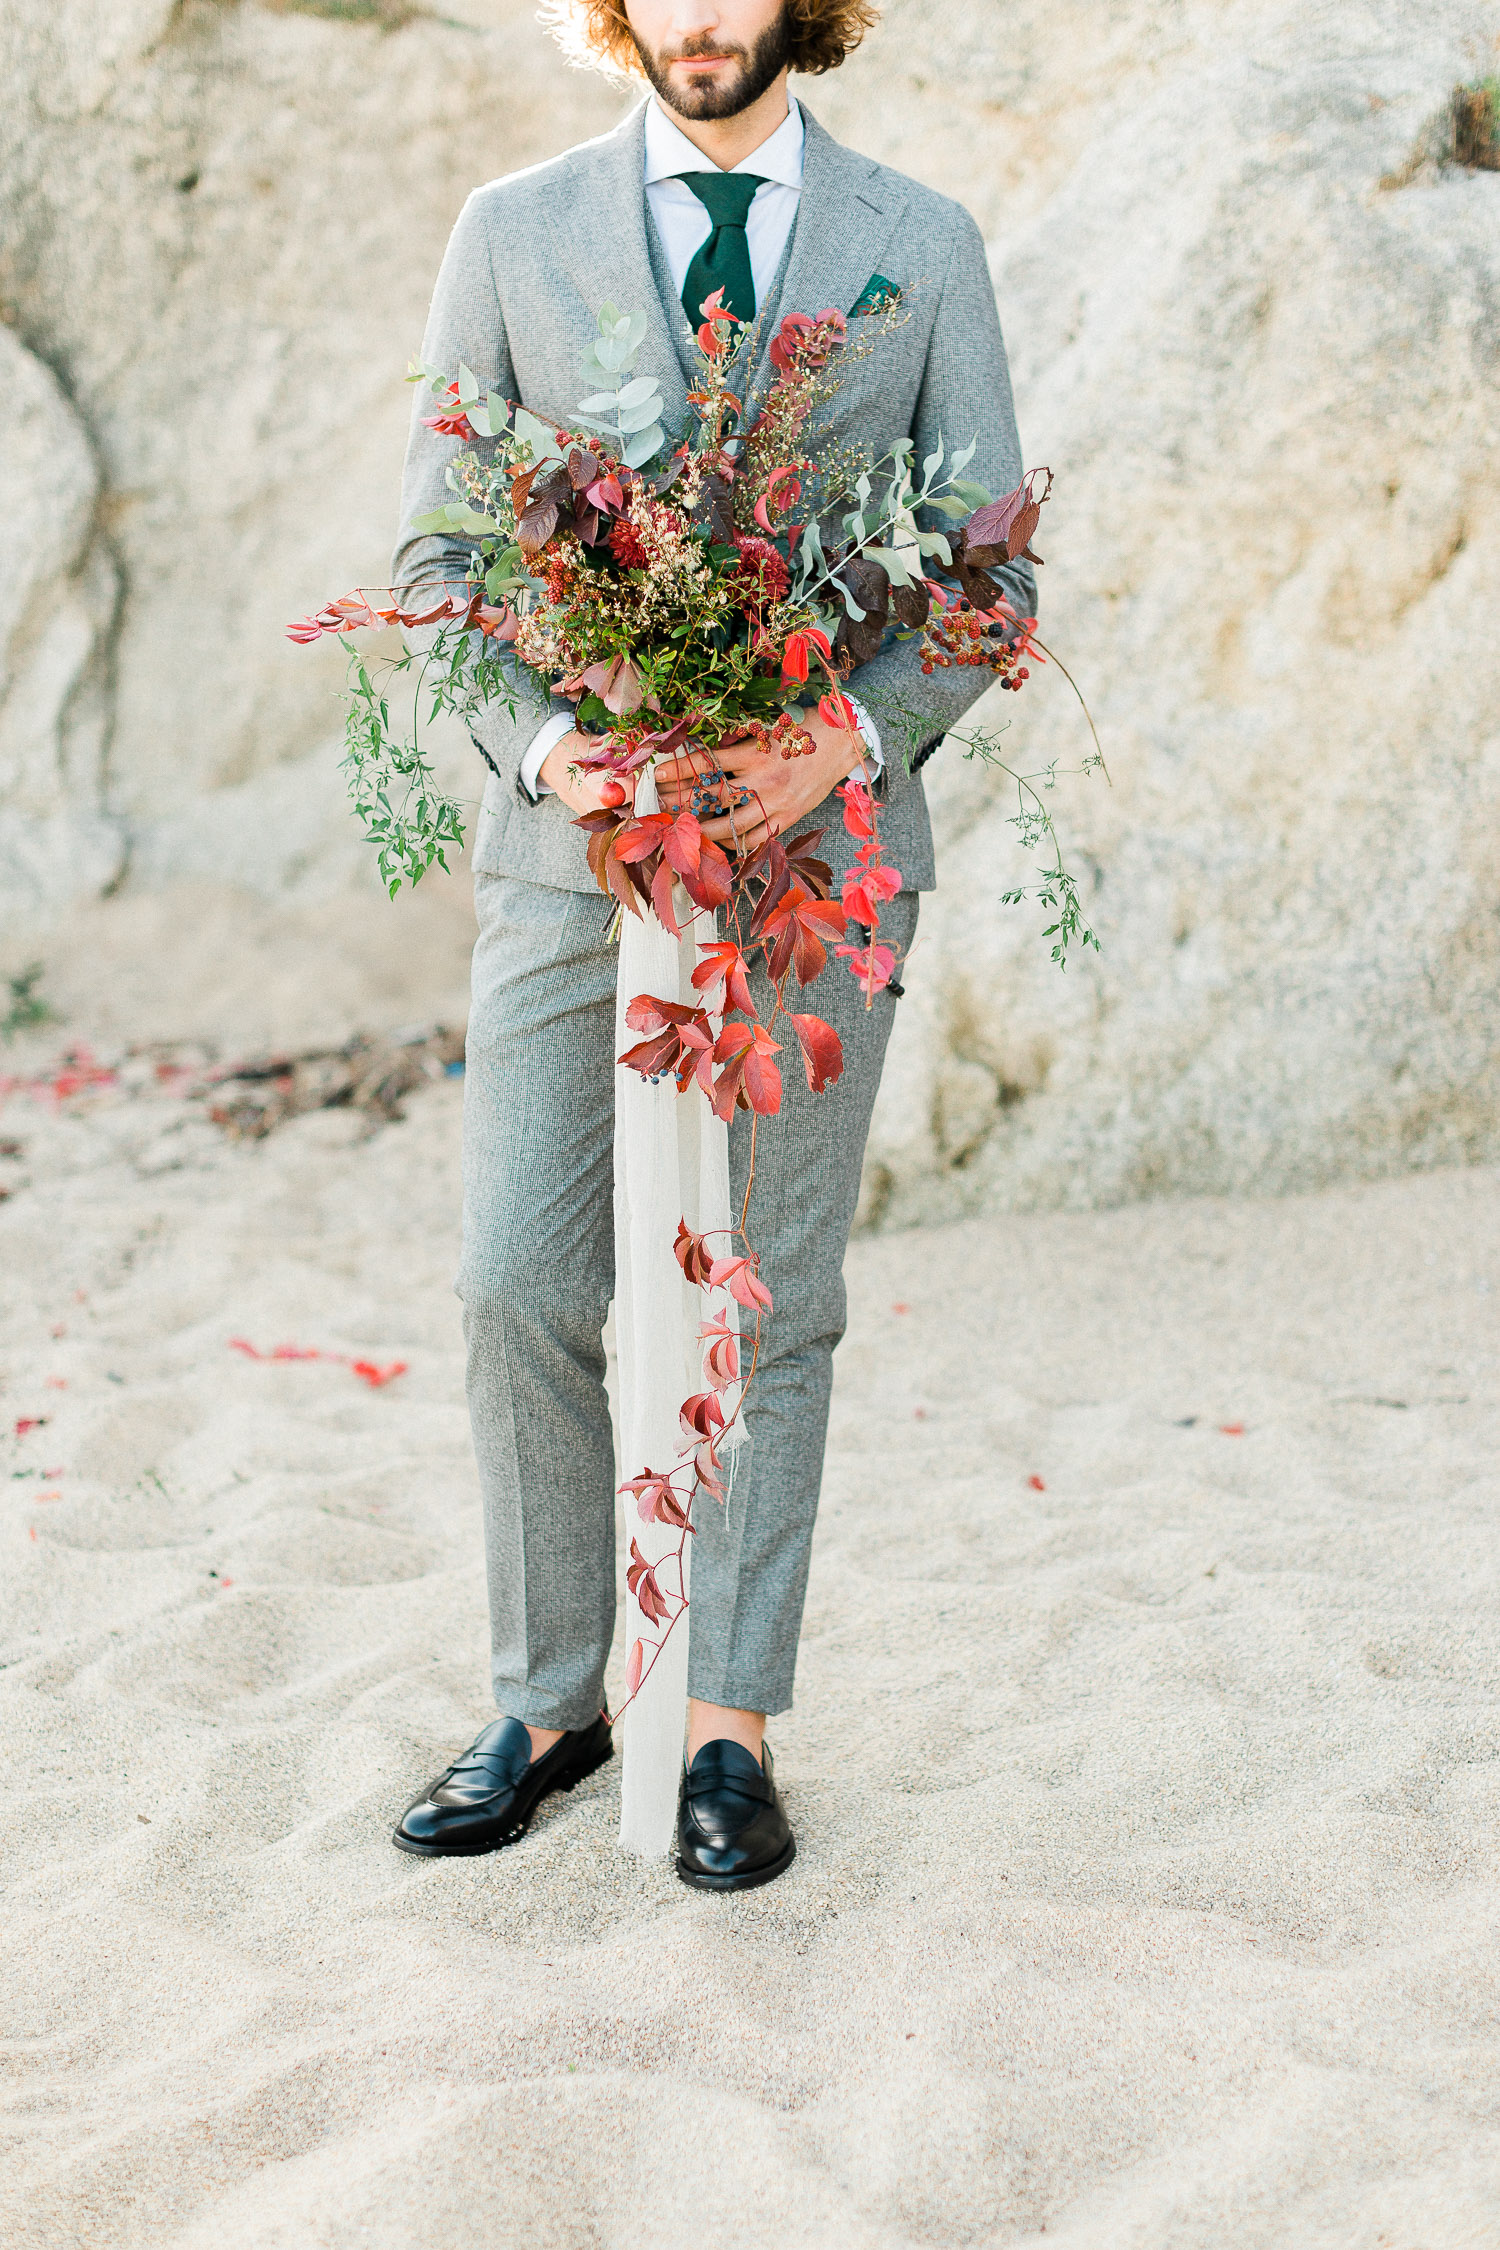 a stylish groom wearing grey tuxedo with green details while holding a lush florals bouquet